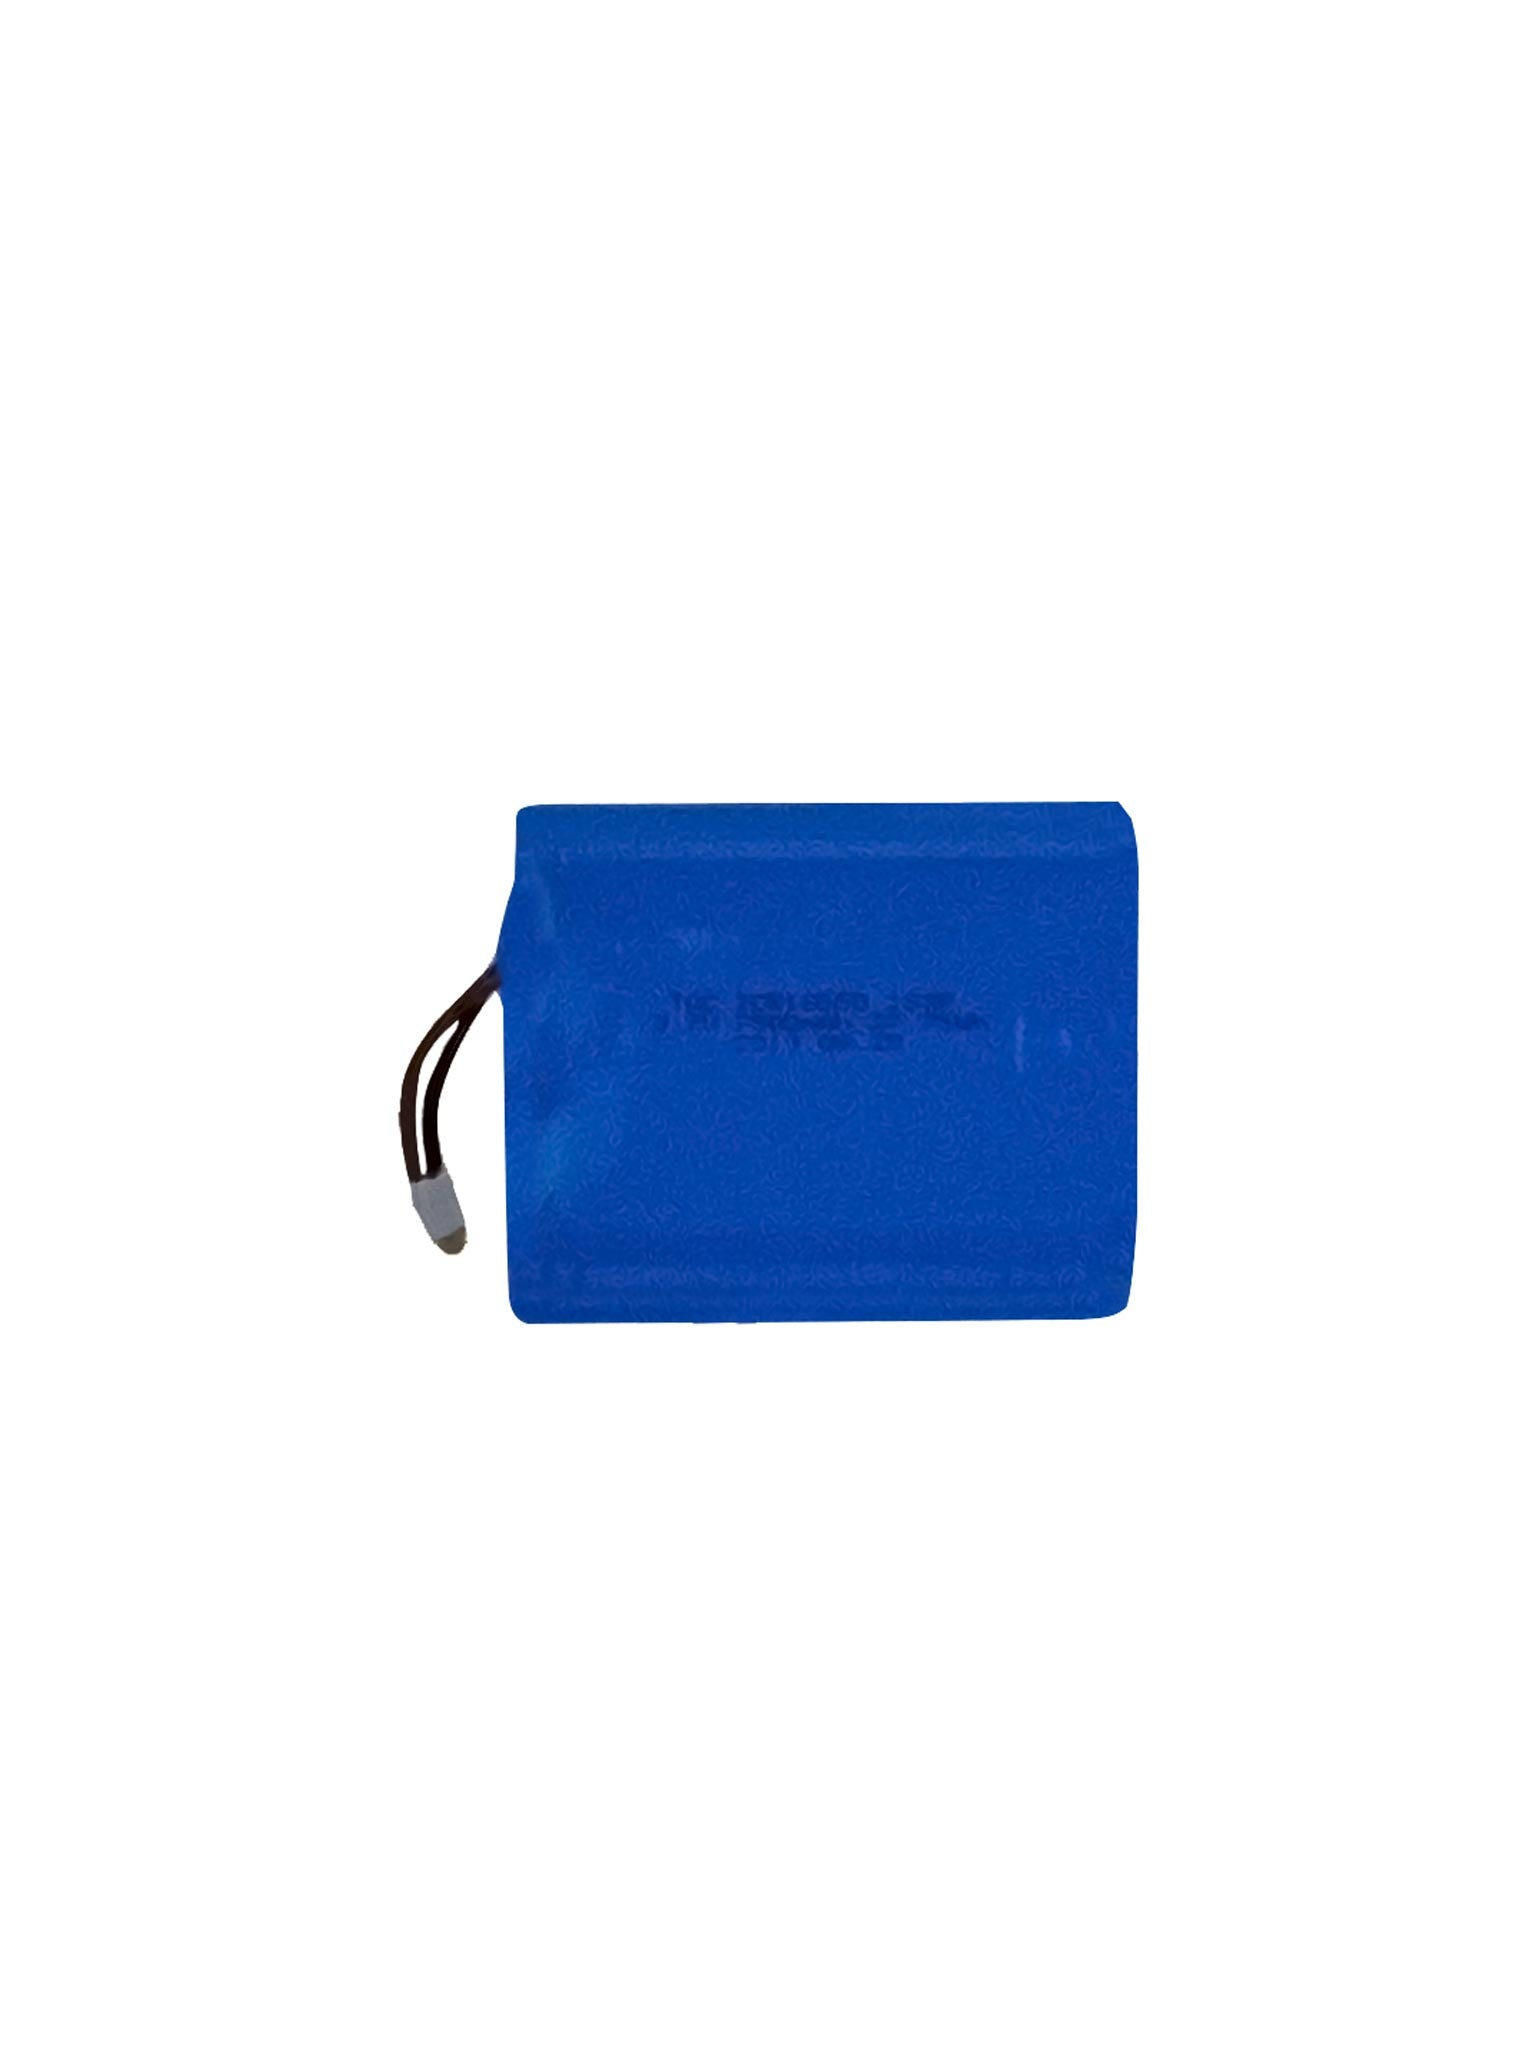 3-Cell Replacement Battery